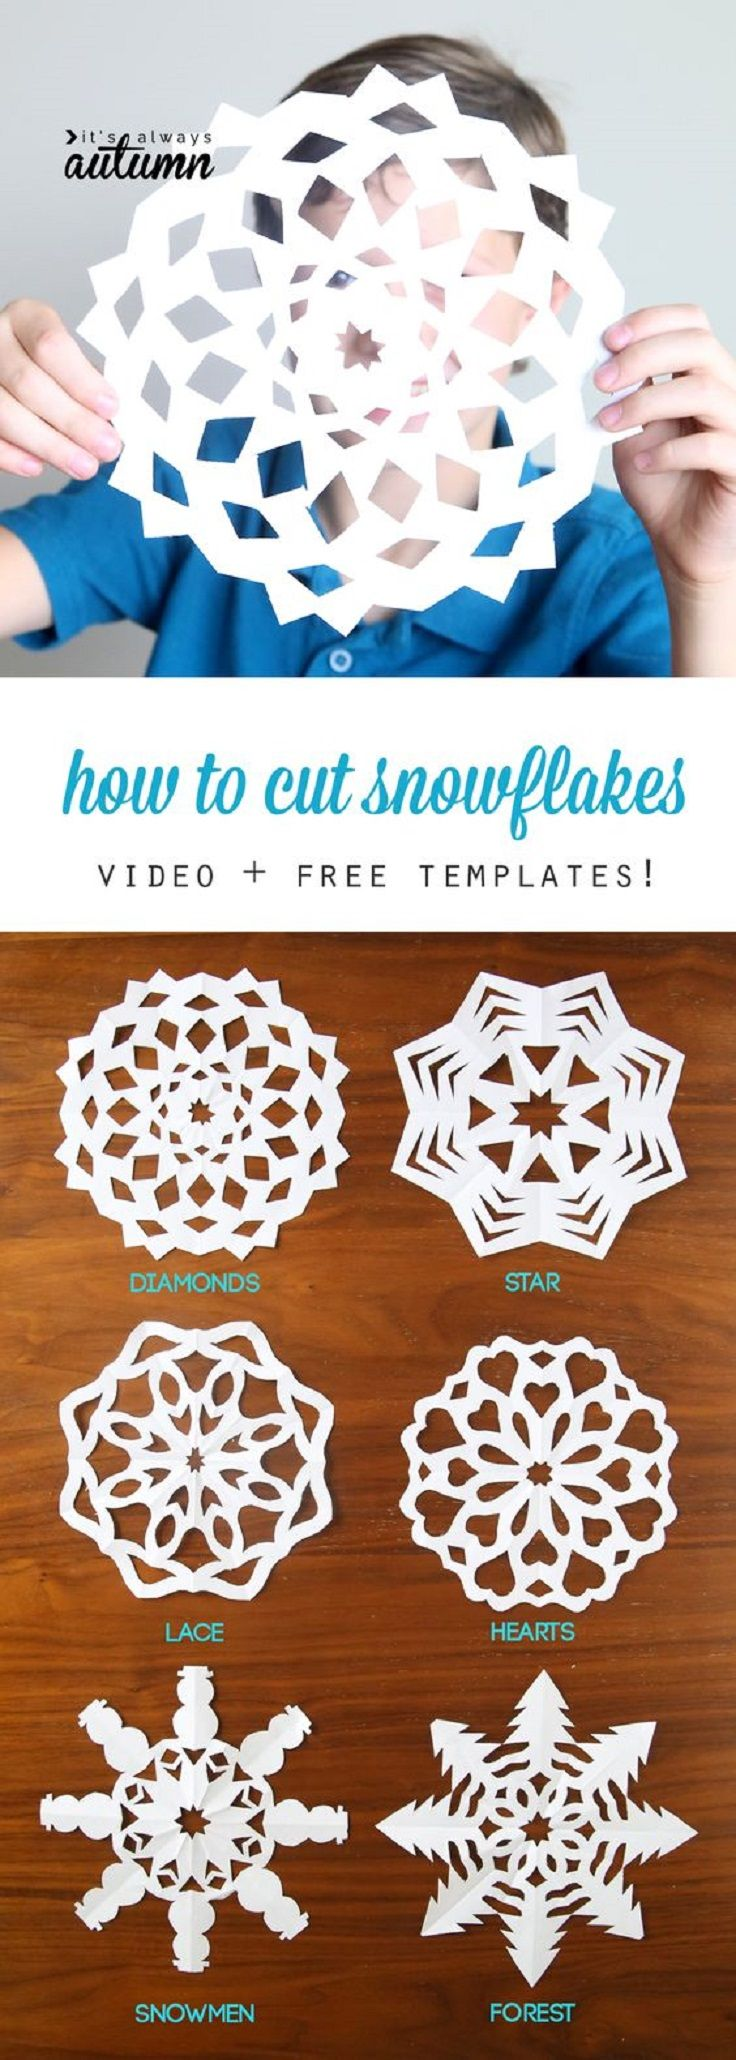 Diy paper snowflakes video tutorial free patterns do it diy paper snowflakes video tutorial free patterns do it yourself today pinterest paper snowflakes diy paper and free pattern solutioingenieria Gallery